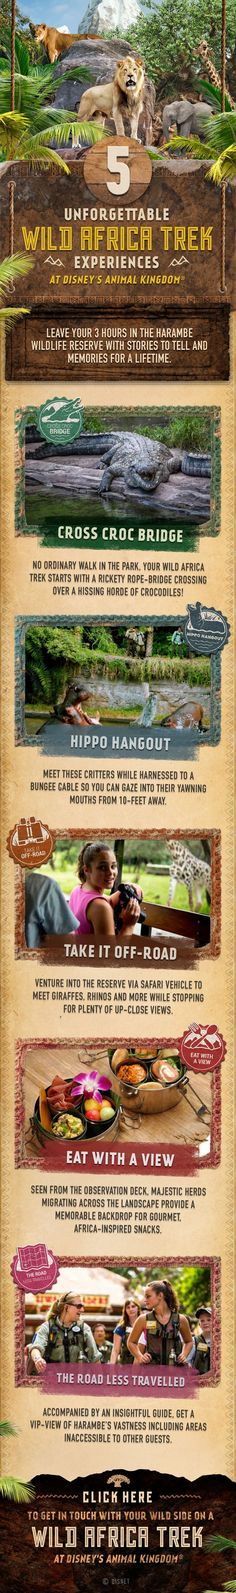 From animal encounters to snacks on the Savannah, check out these 5 unforgettable experiences on Wild Africa Trek at Disney's Animal Kingdom at Walt Disney World. Add a little adventure to your family vacation!